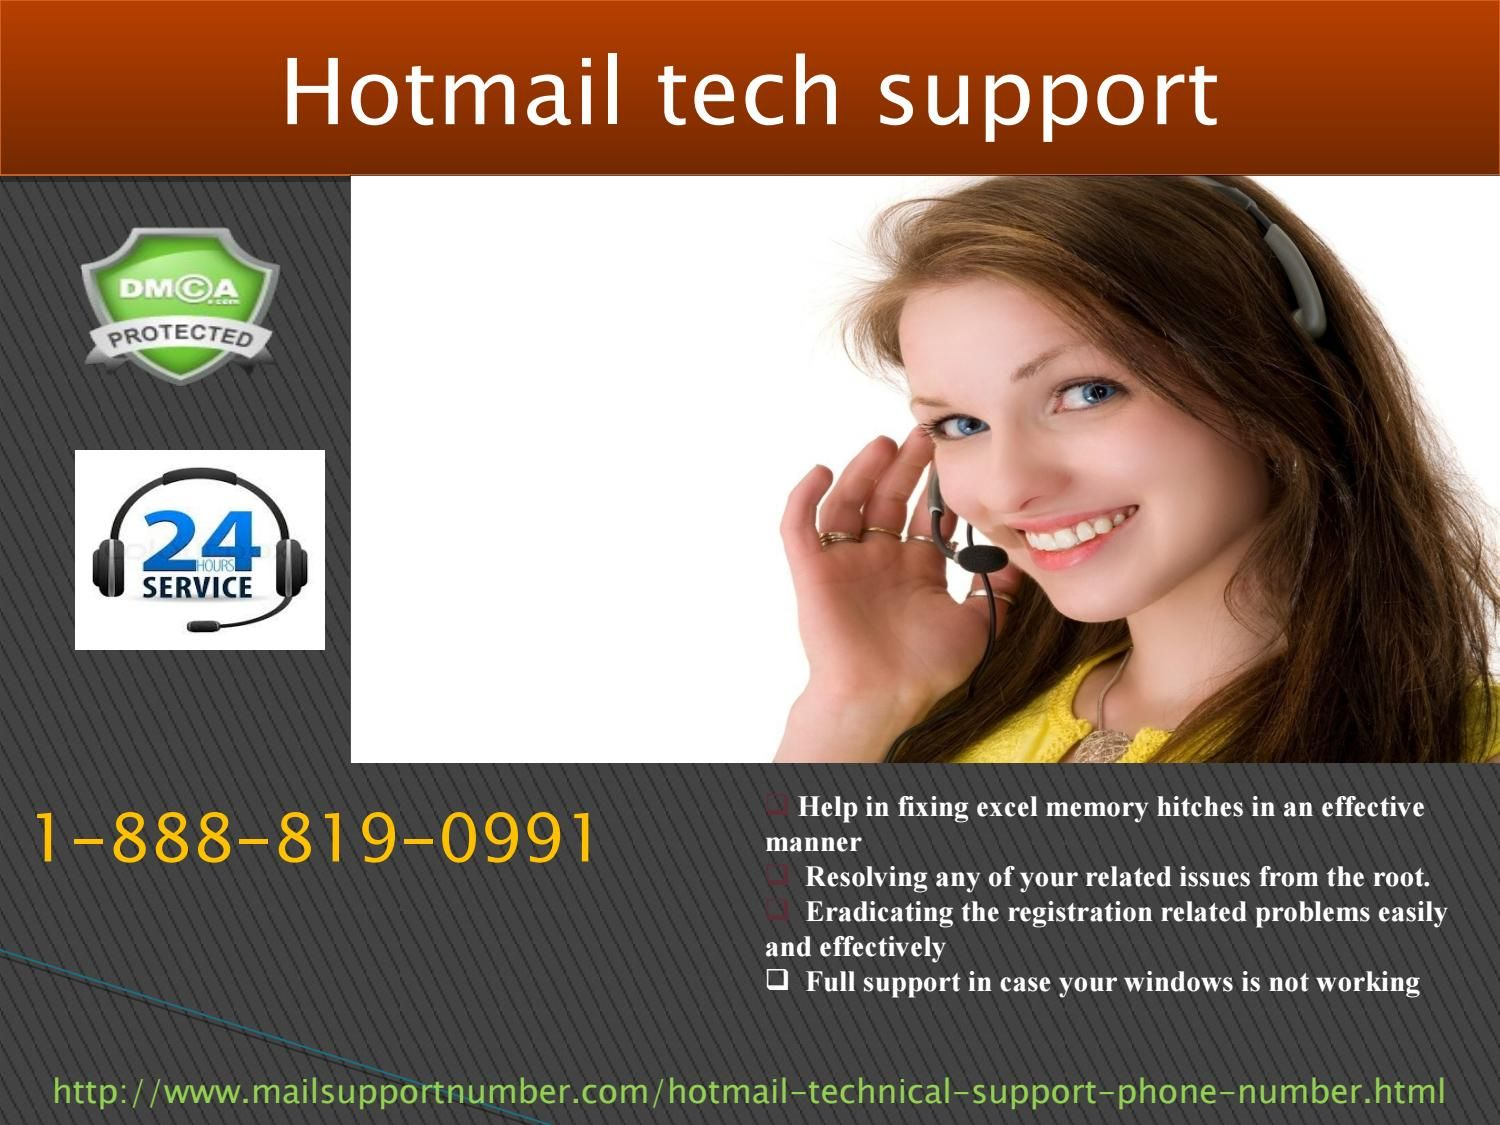 Hotmail tech support 18888190991 at your nearest